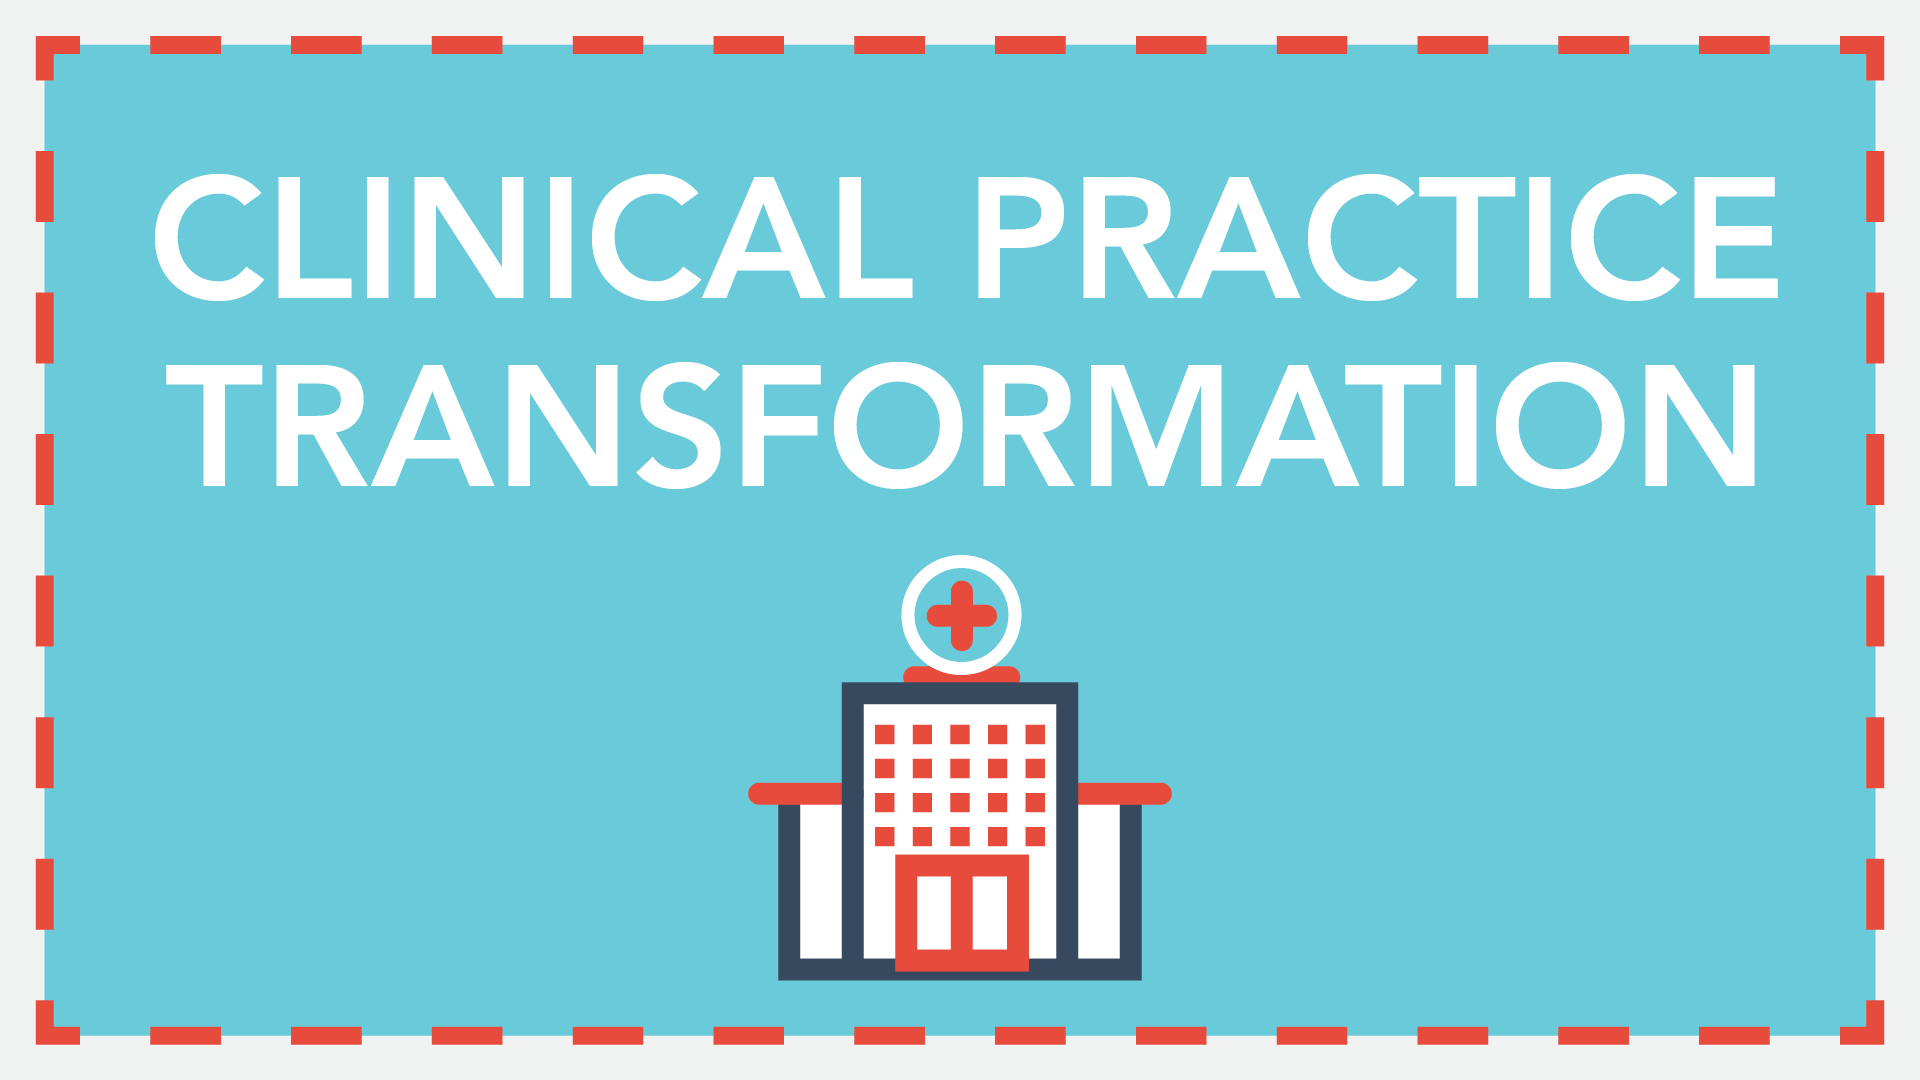 Clinical Practice Transformation